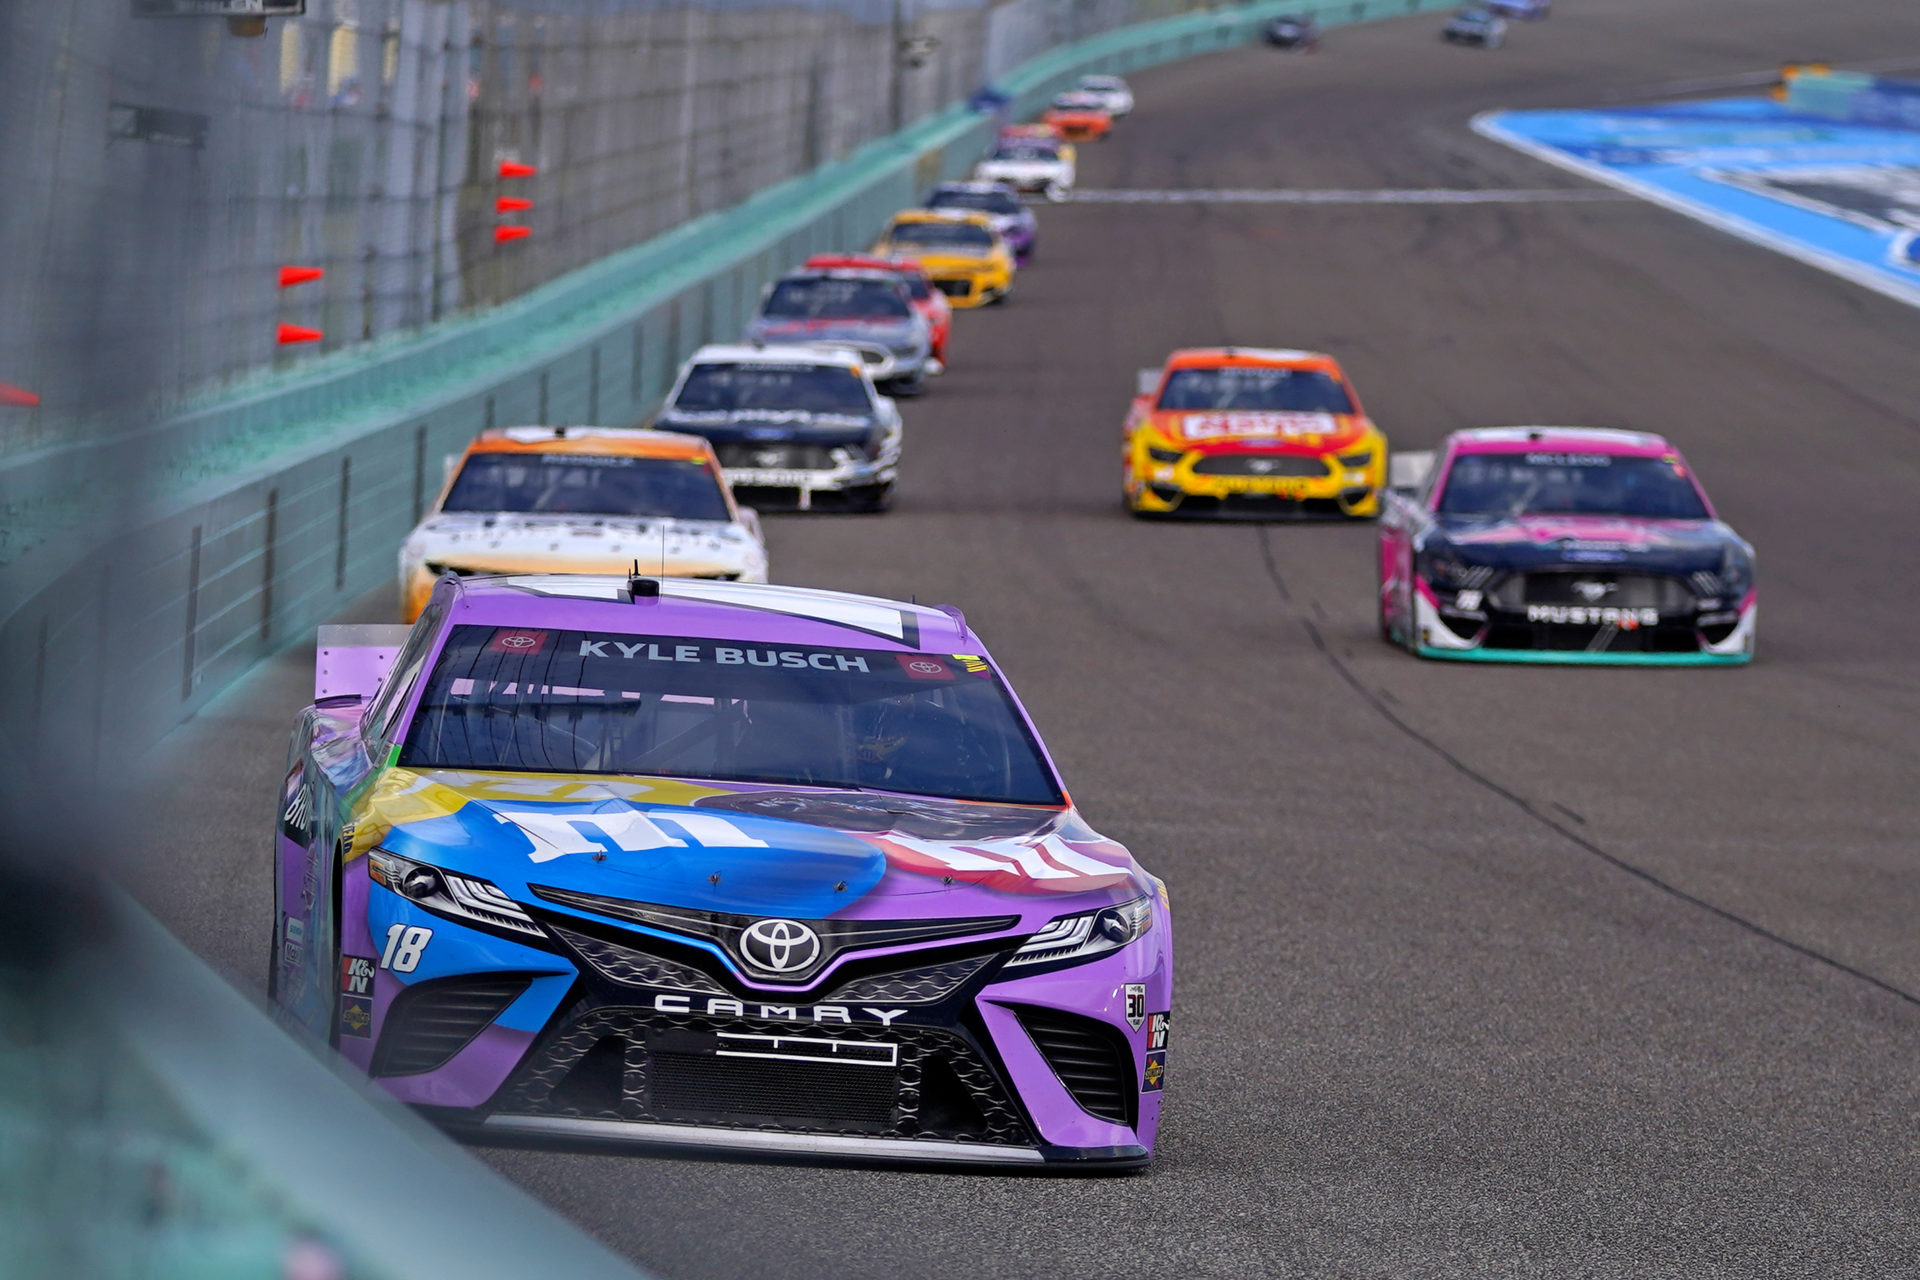 Kyle Busch Recounts Disappointing NASCAR Race at Homestead-Miami, Looks Forward to Las Vegas